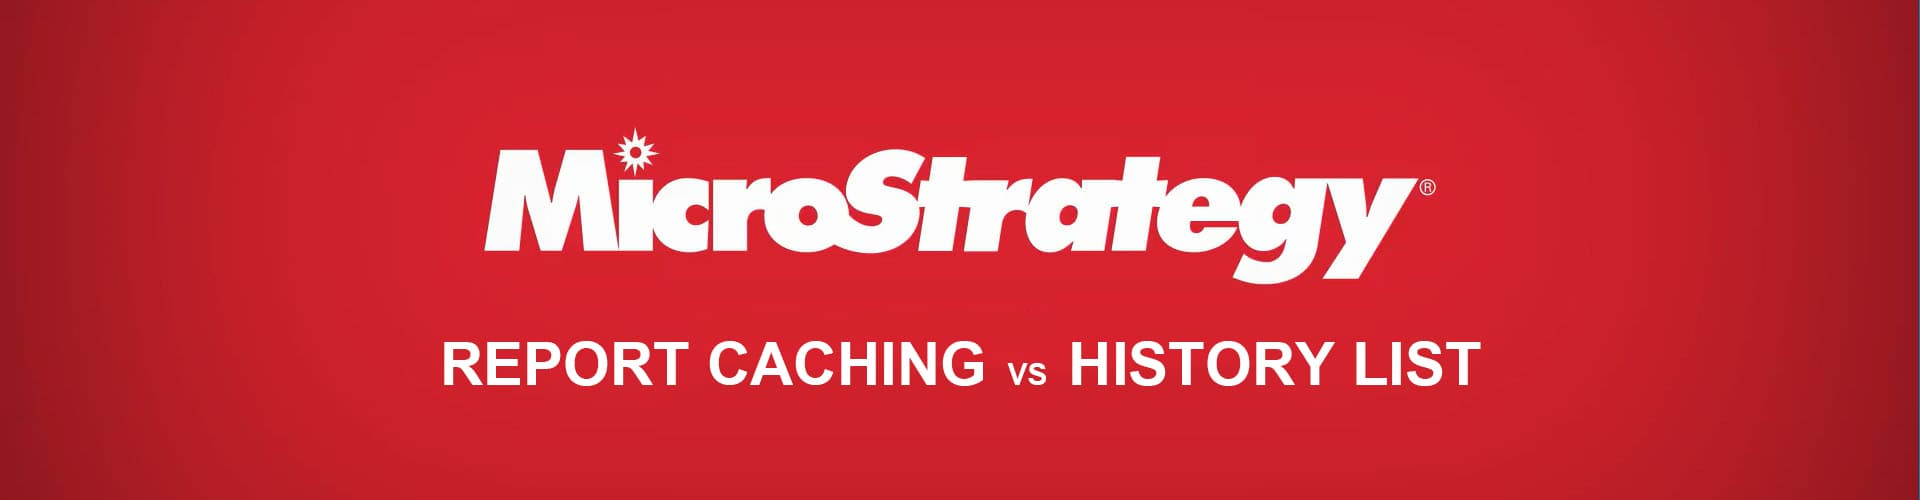 MicroStrategy: Report Caching vs History List